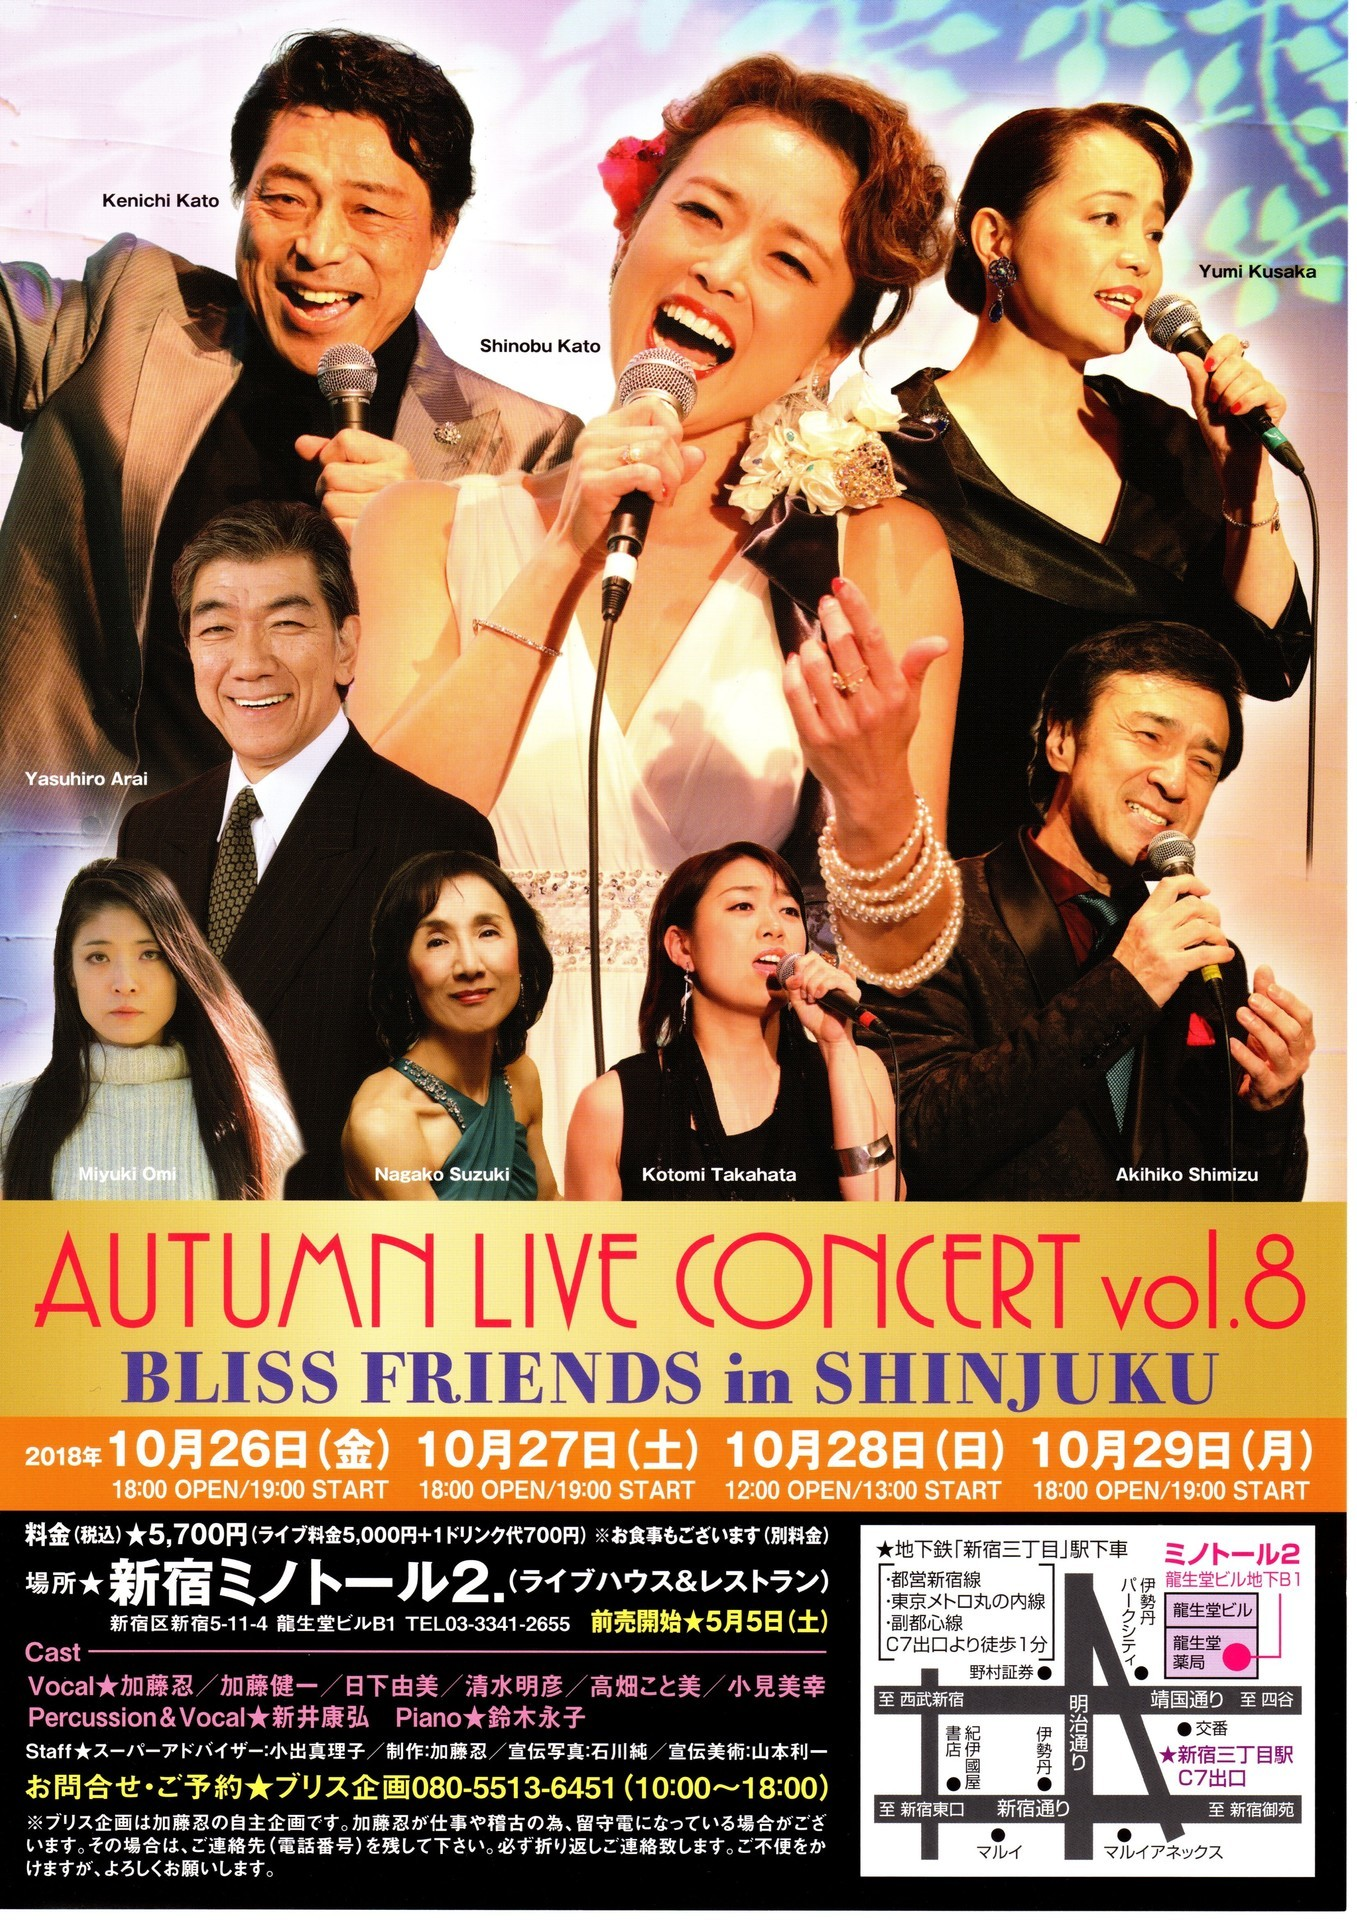 AUTUMN LIVE CONCERT vol.8.jpg